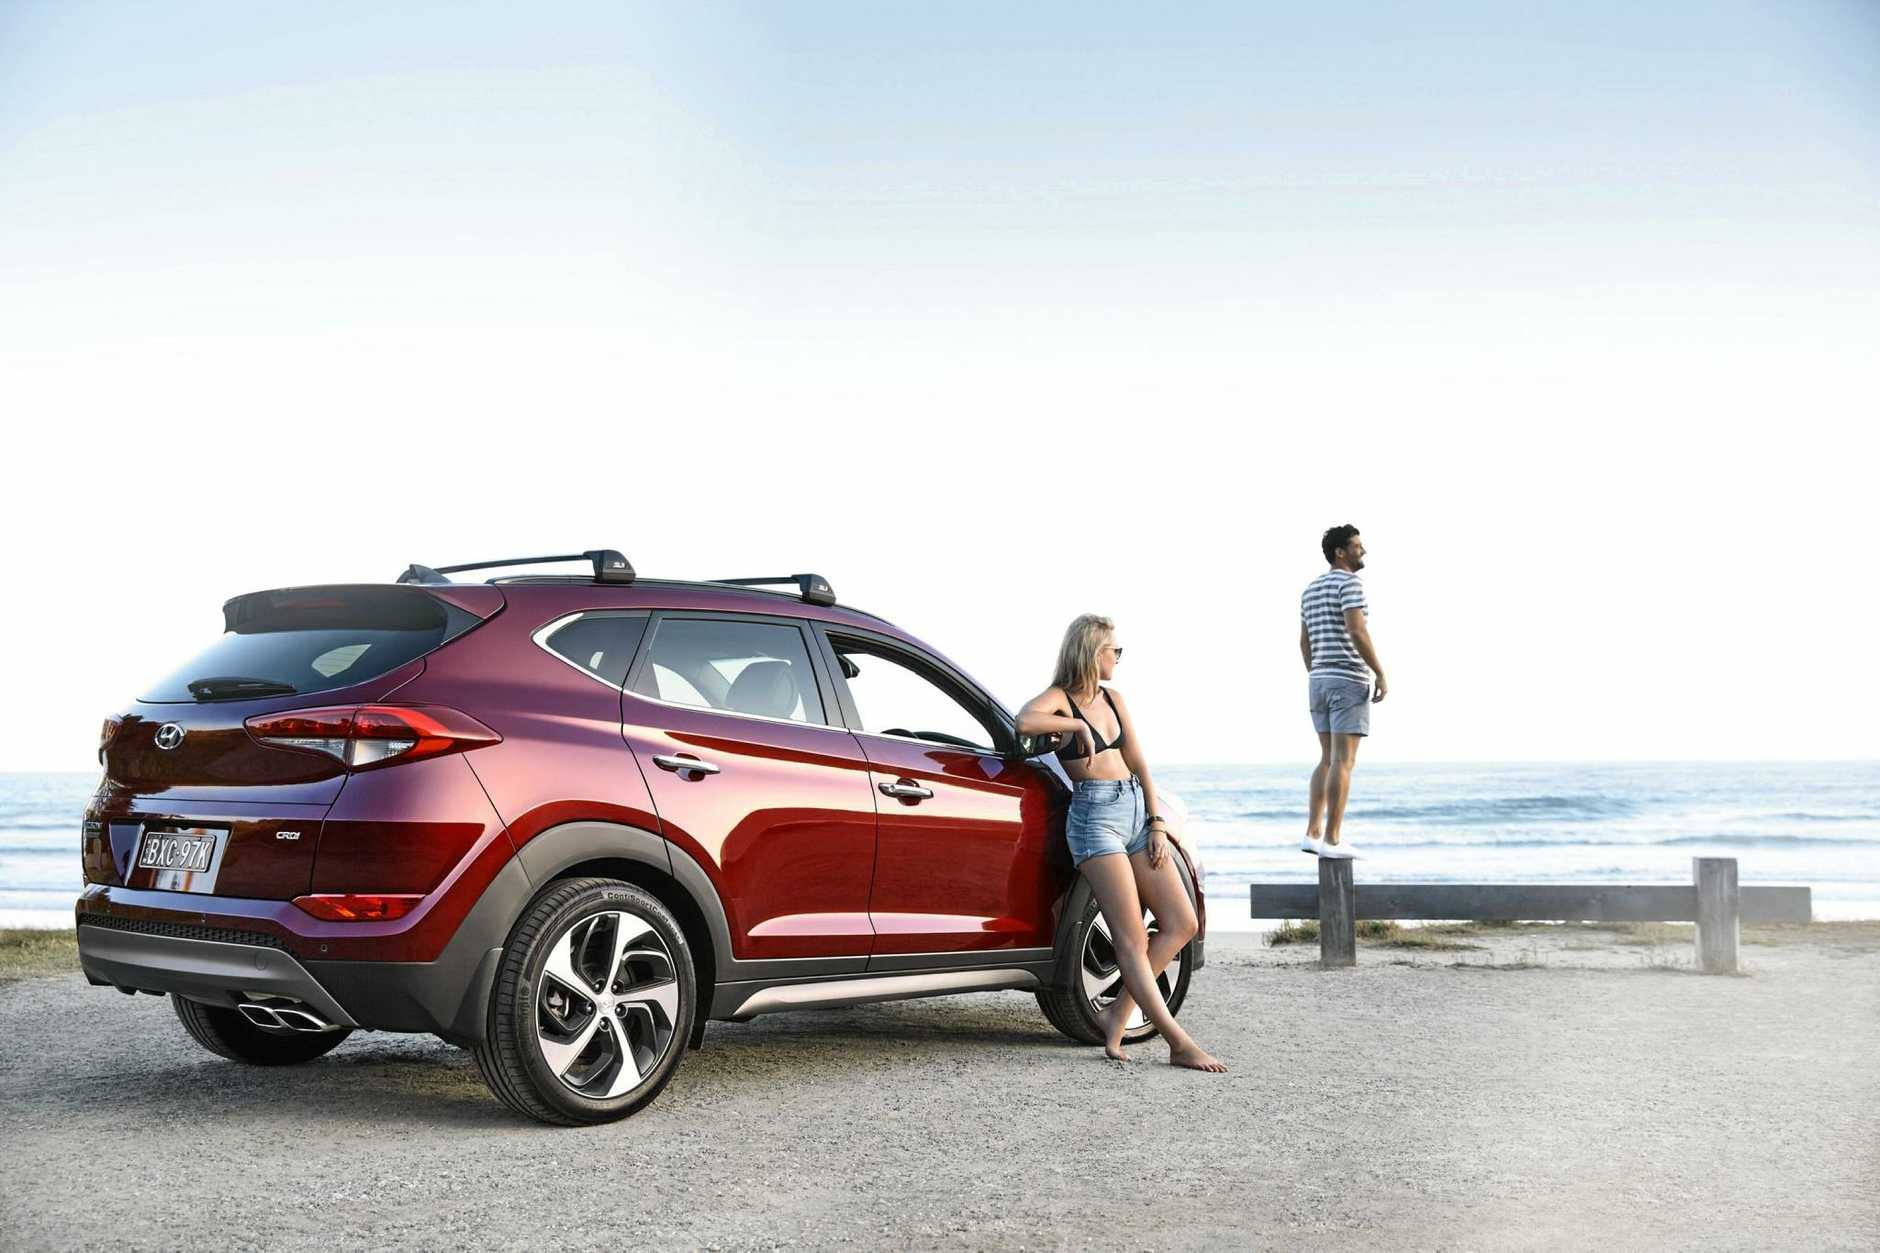 The Hyundai Tucson Active X